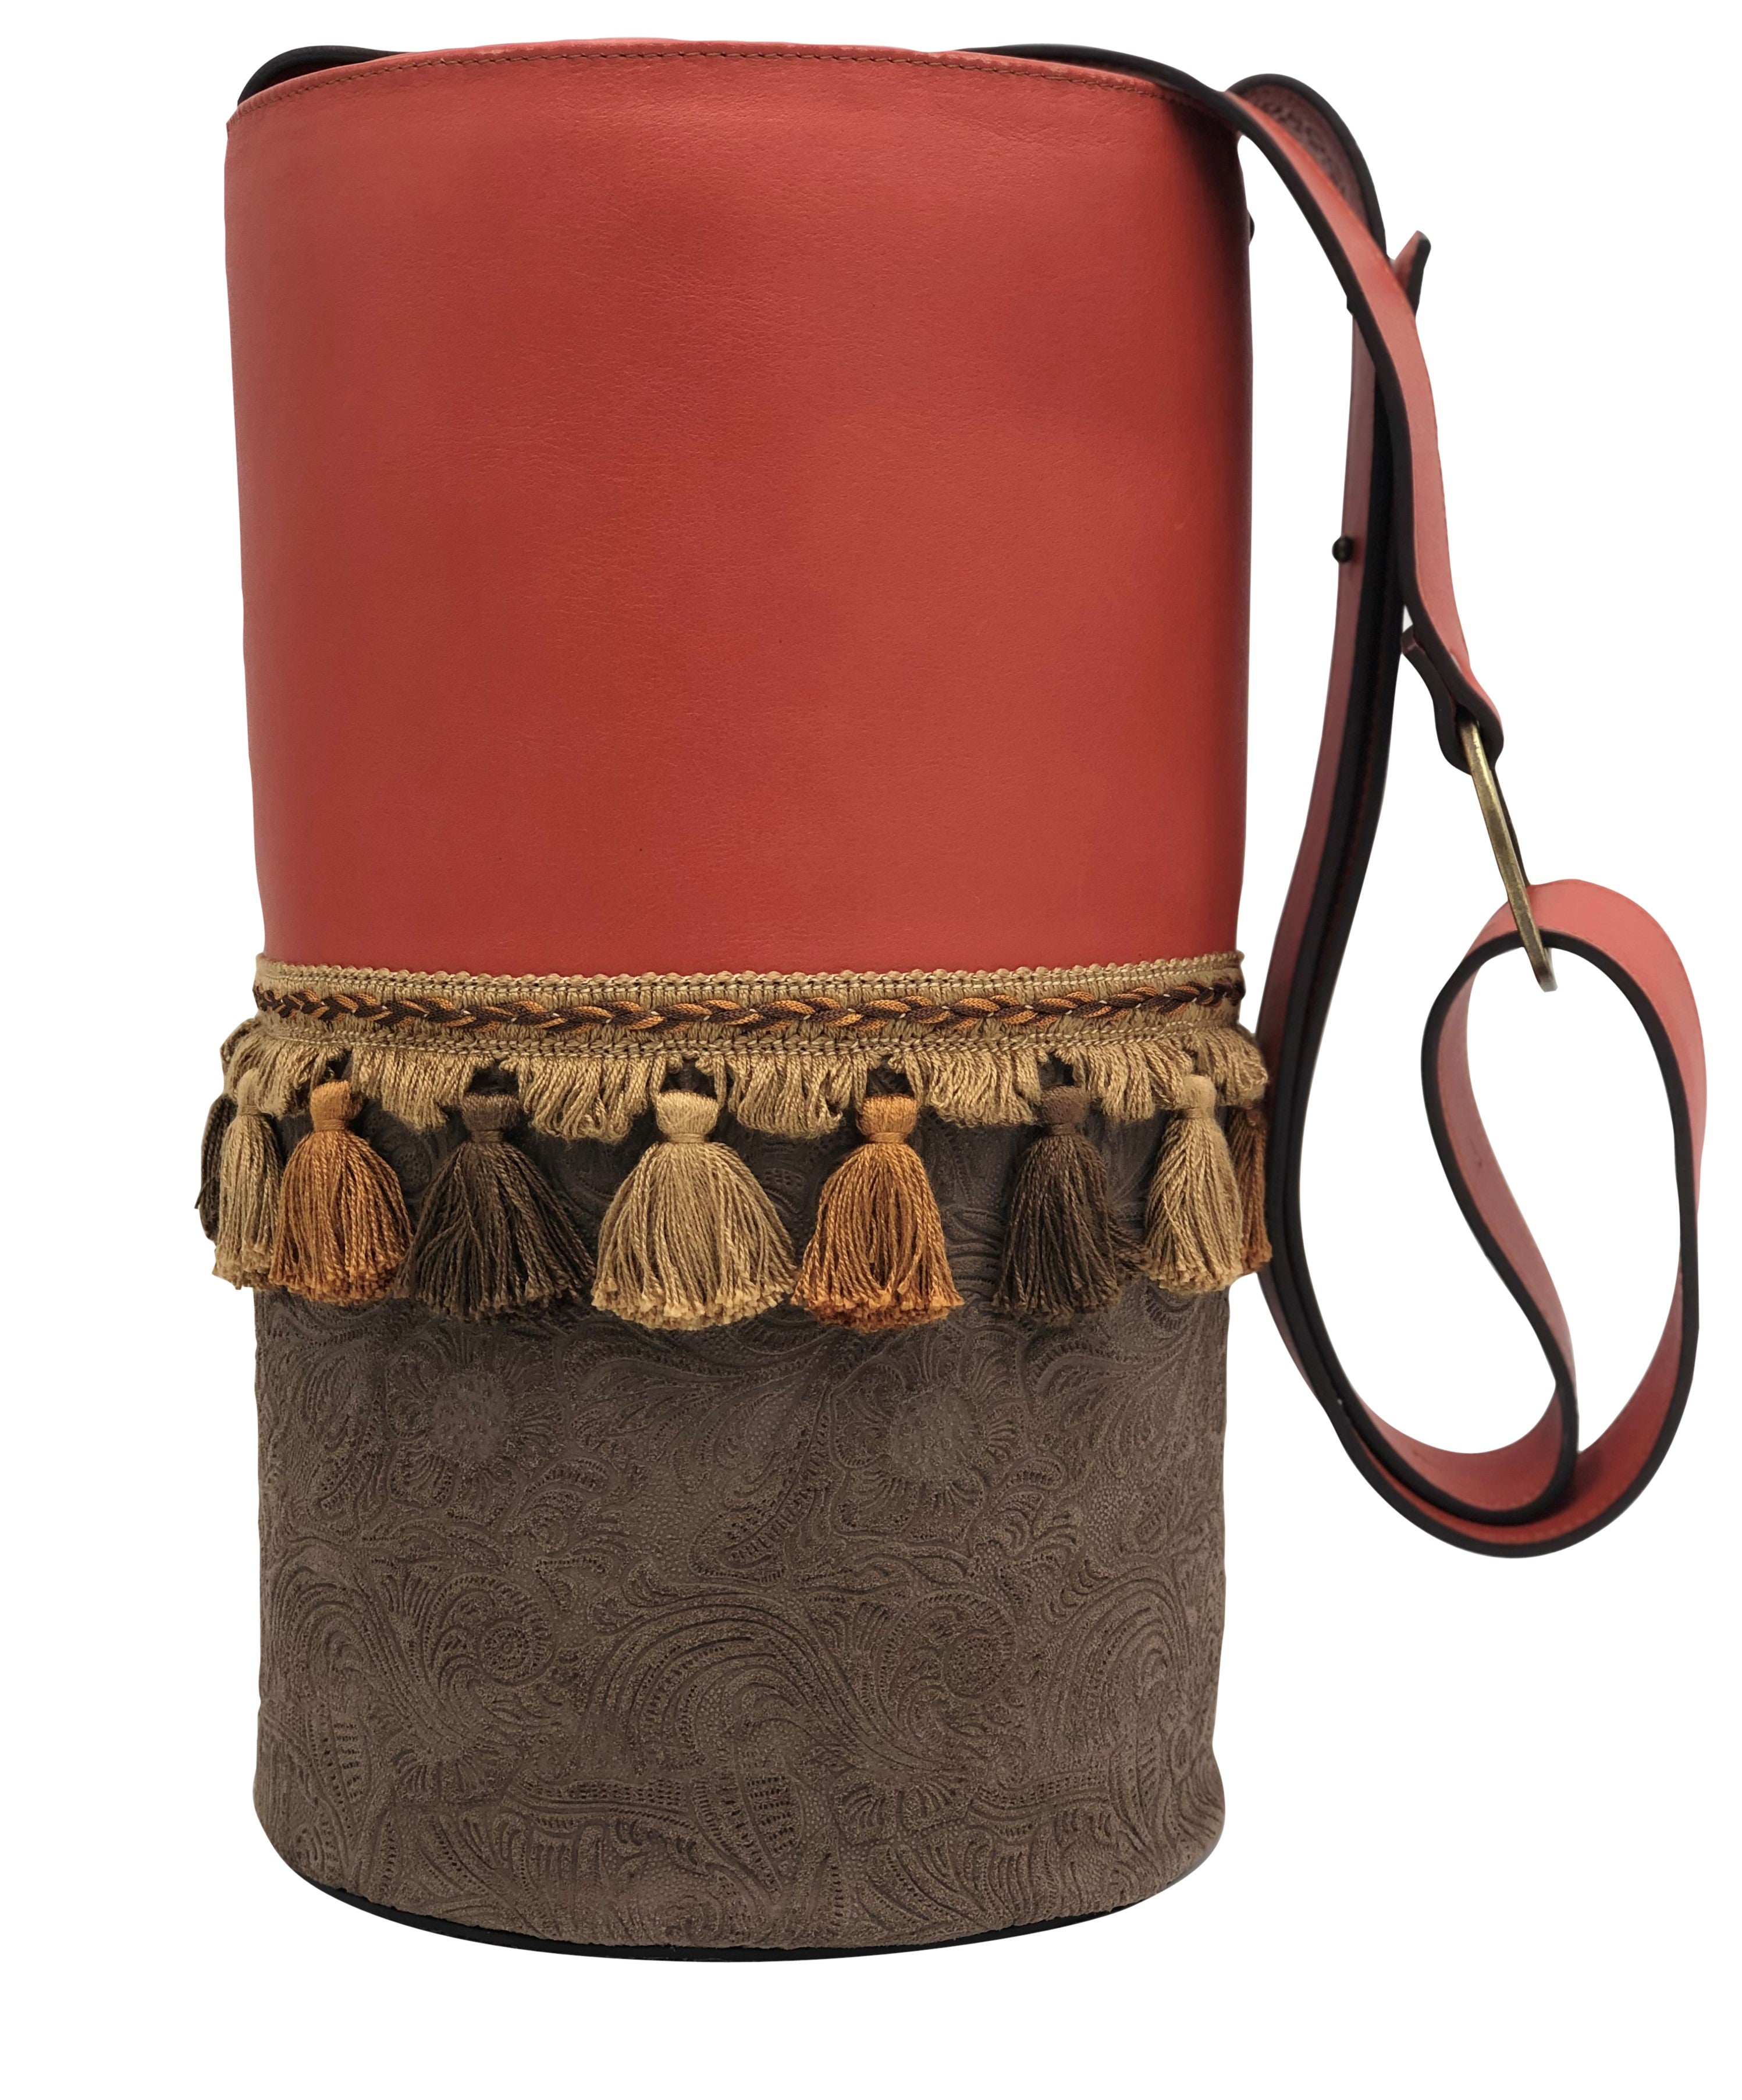 "Red & engraved brown leather bag with tassels. ""Hibiscus bond""."